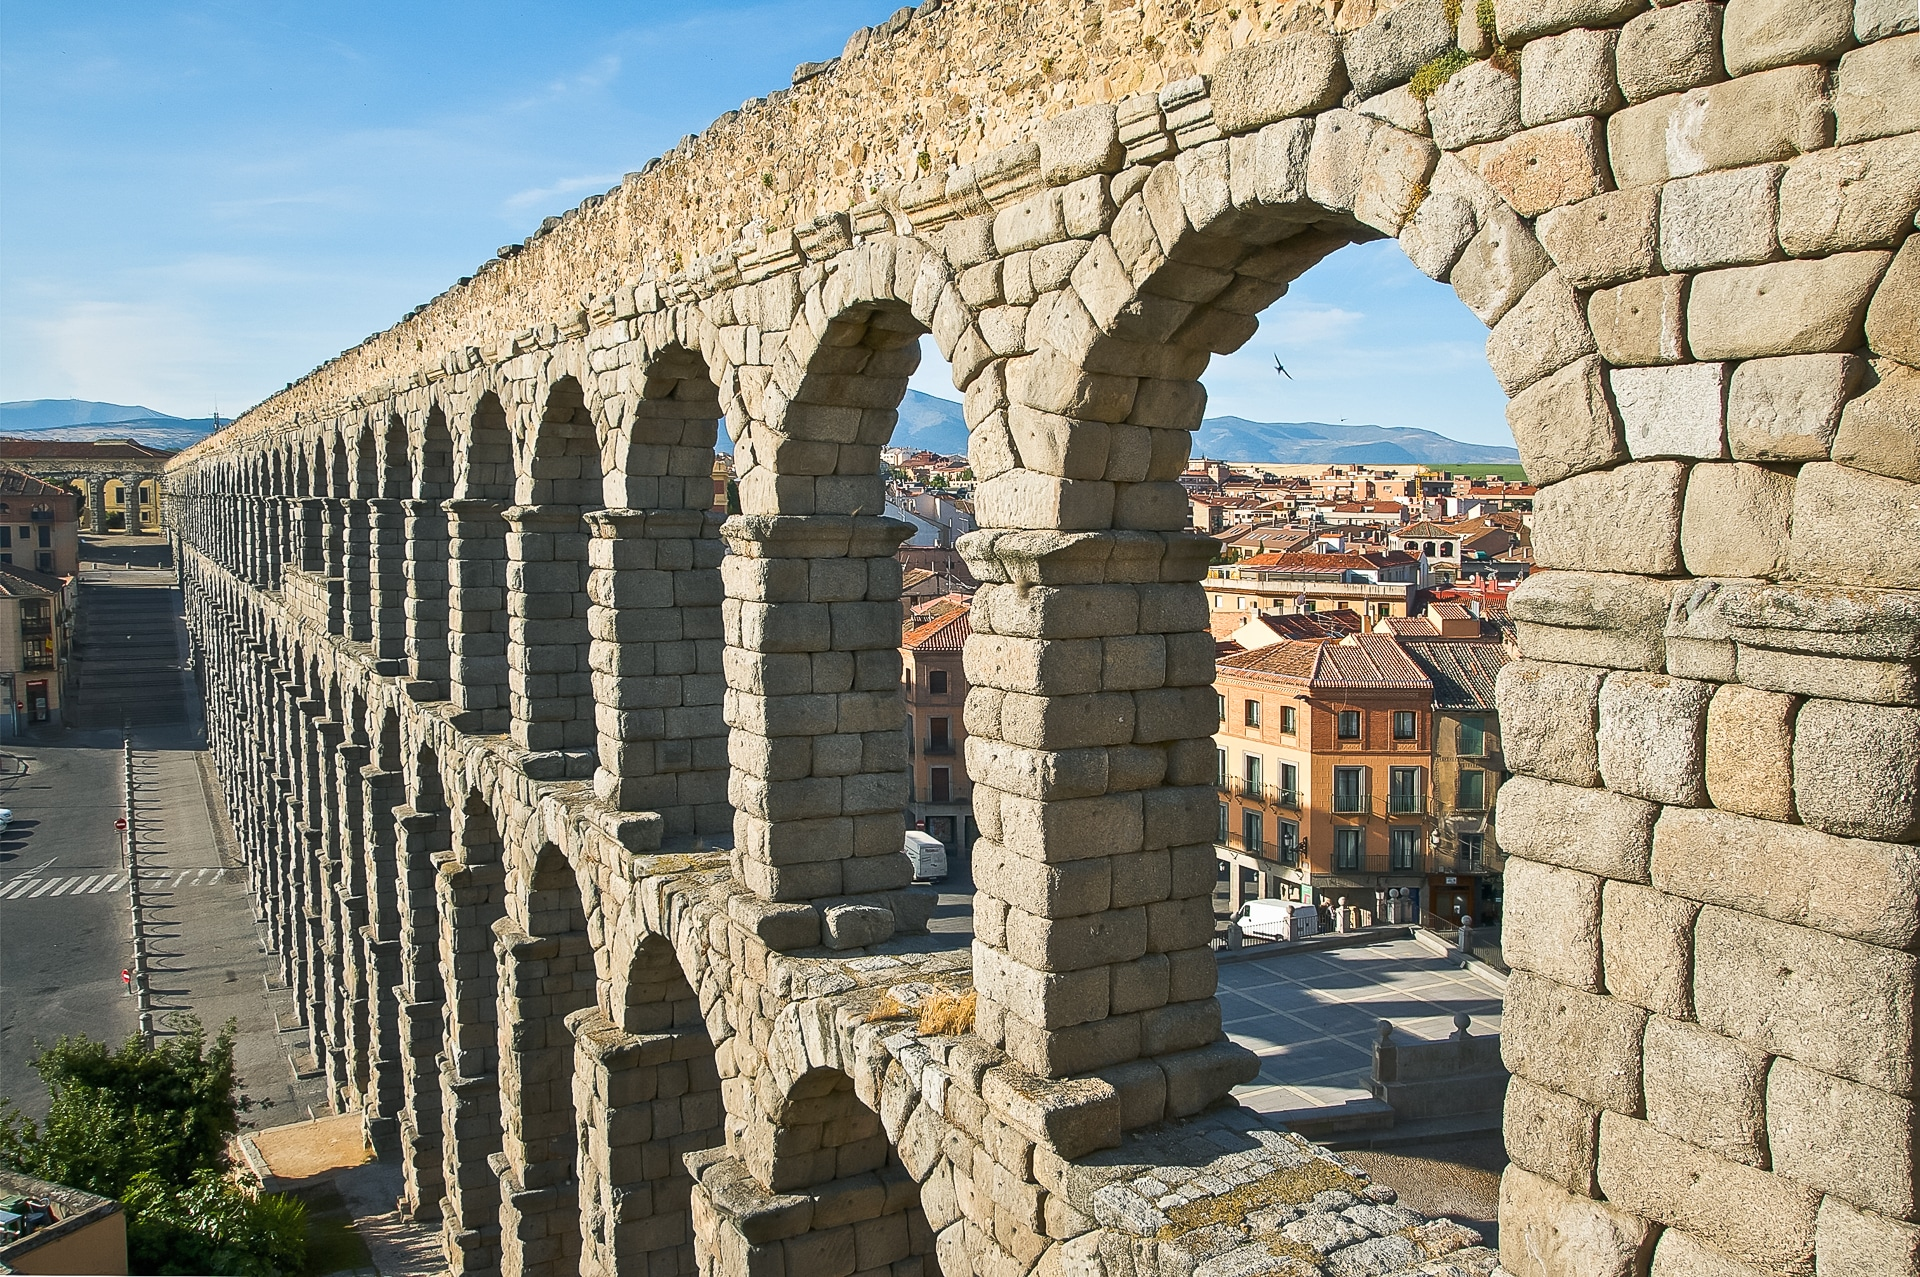 Excursions and tours in Segovia, Spain